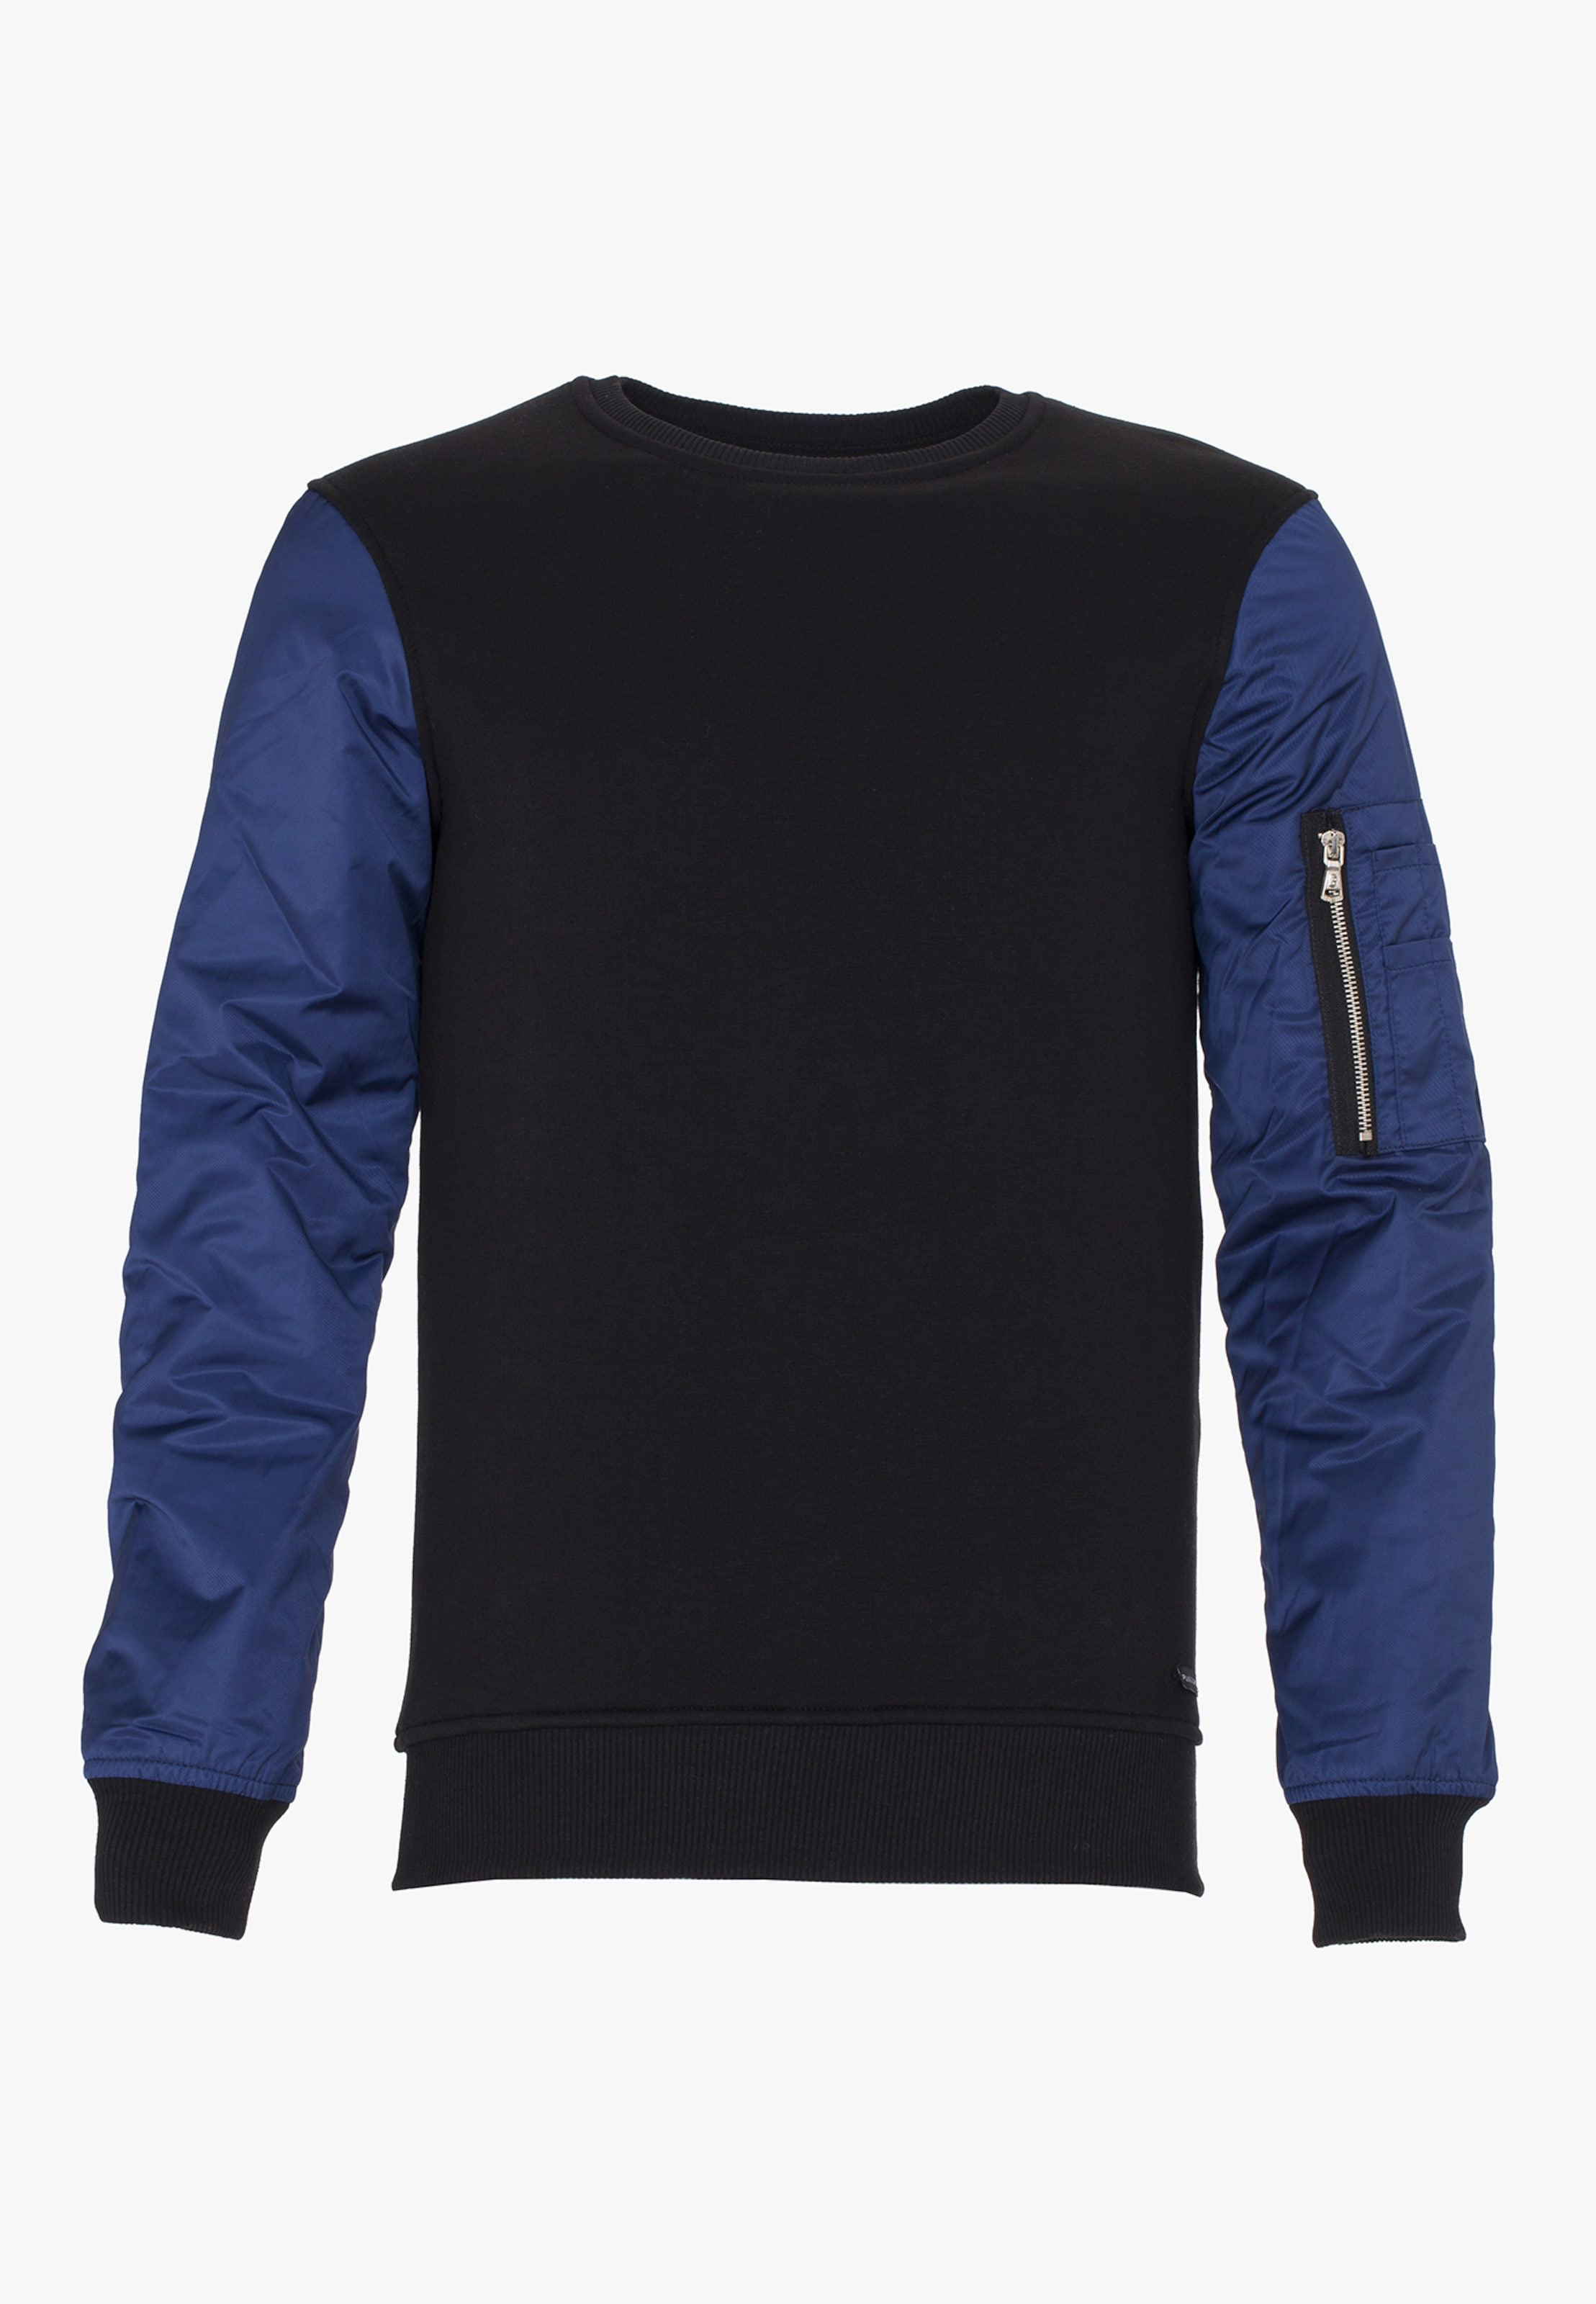 shirt Cassé Eighteen Plus BleuBlanc Sweat En ikXwZuTOP